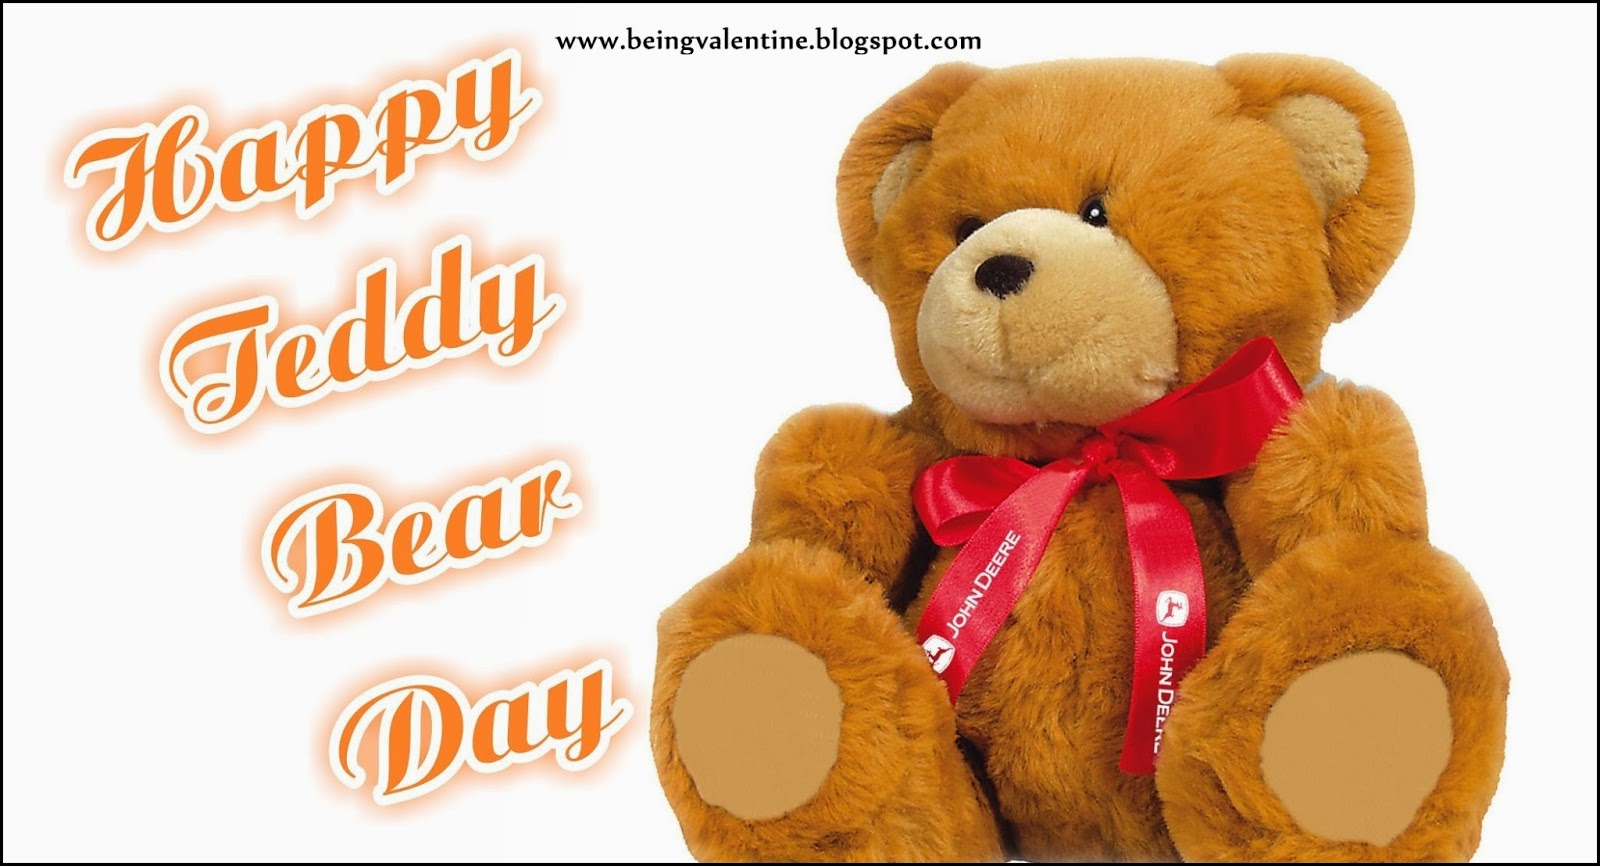 Being valentine happy teddy day 2014 hd wallpapers and photos happyteddybearday2014pictures m4hsunfo